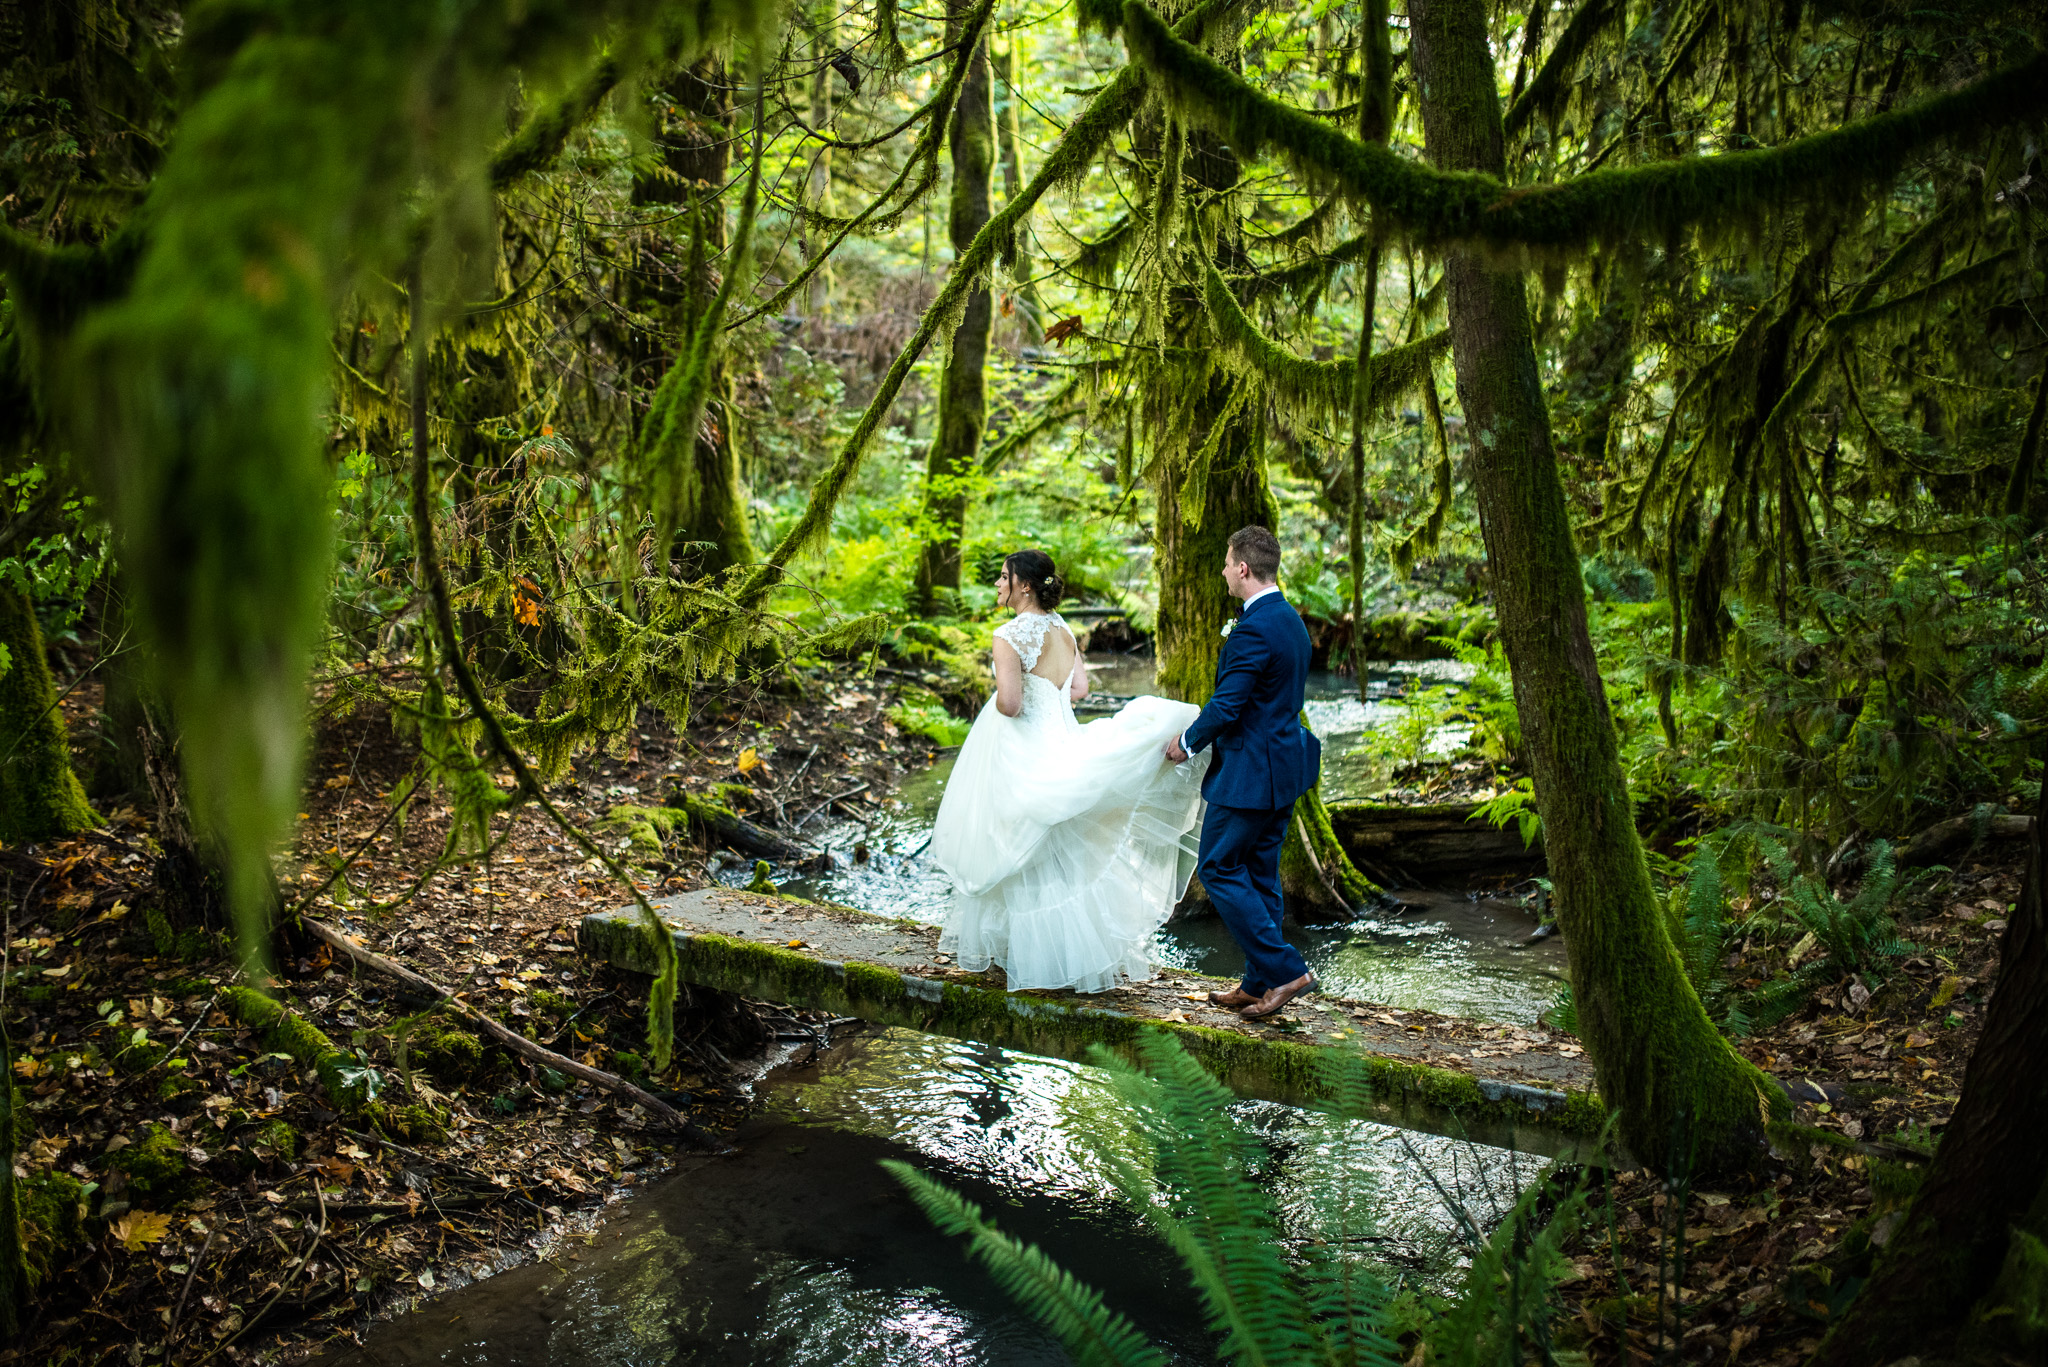 cheakamus-centre-wedding-squamish-victoria-wedding-photographers-27.jpg